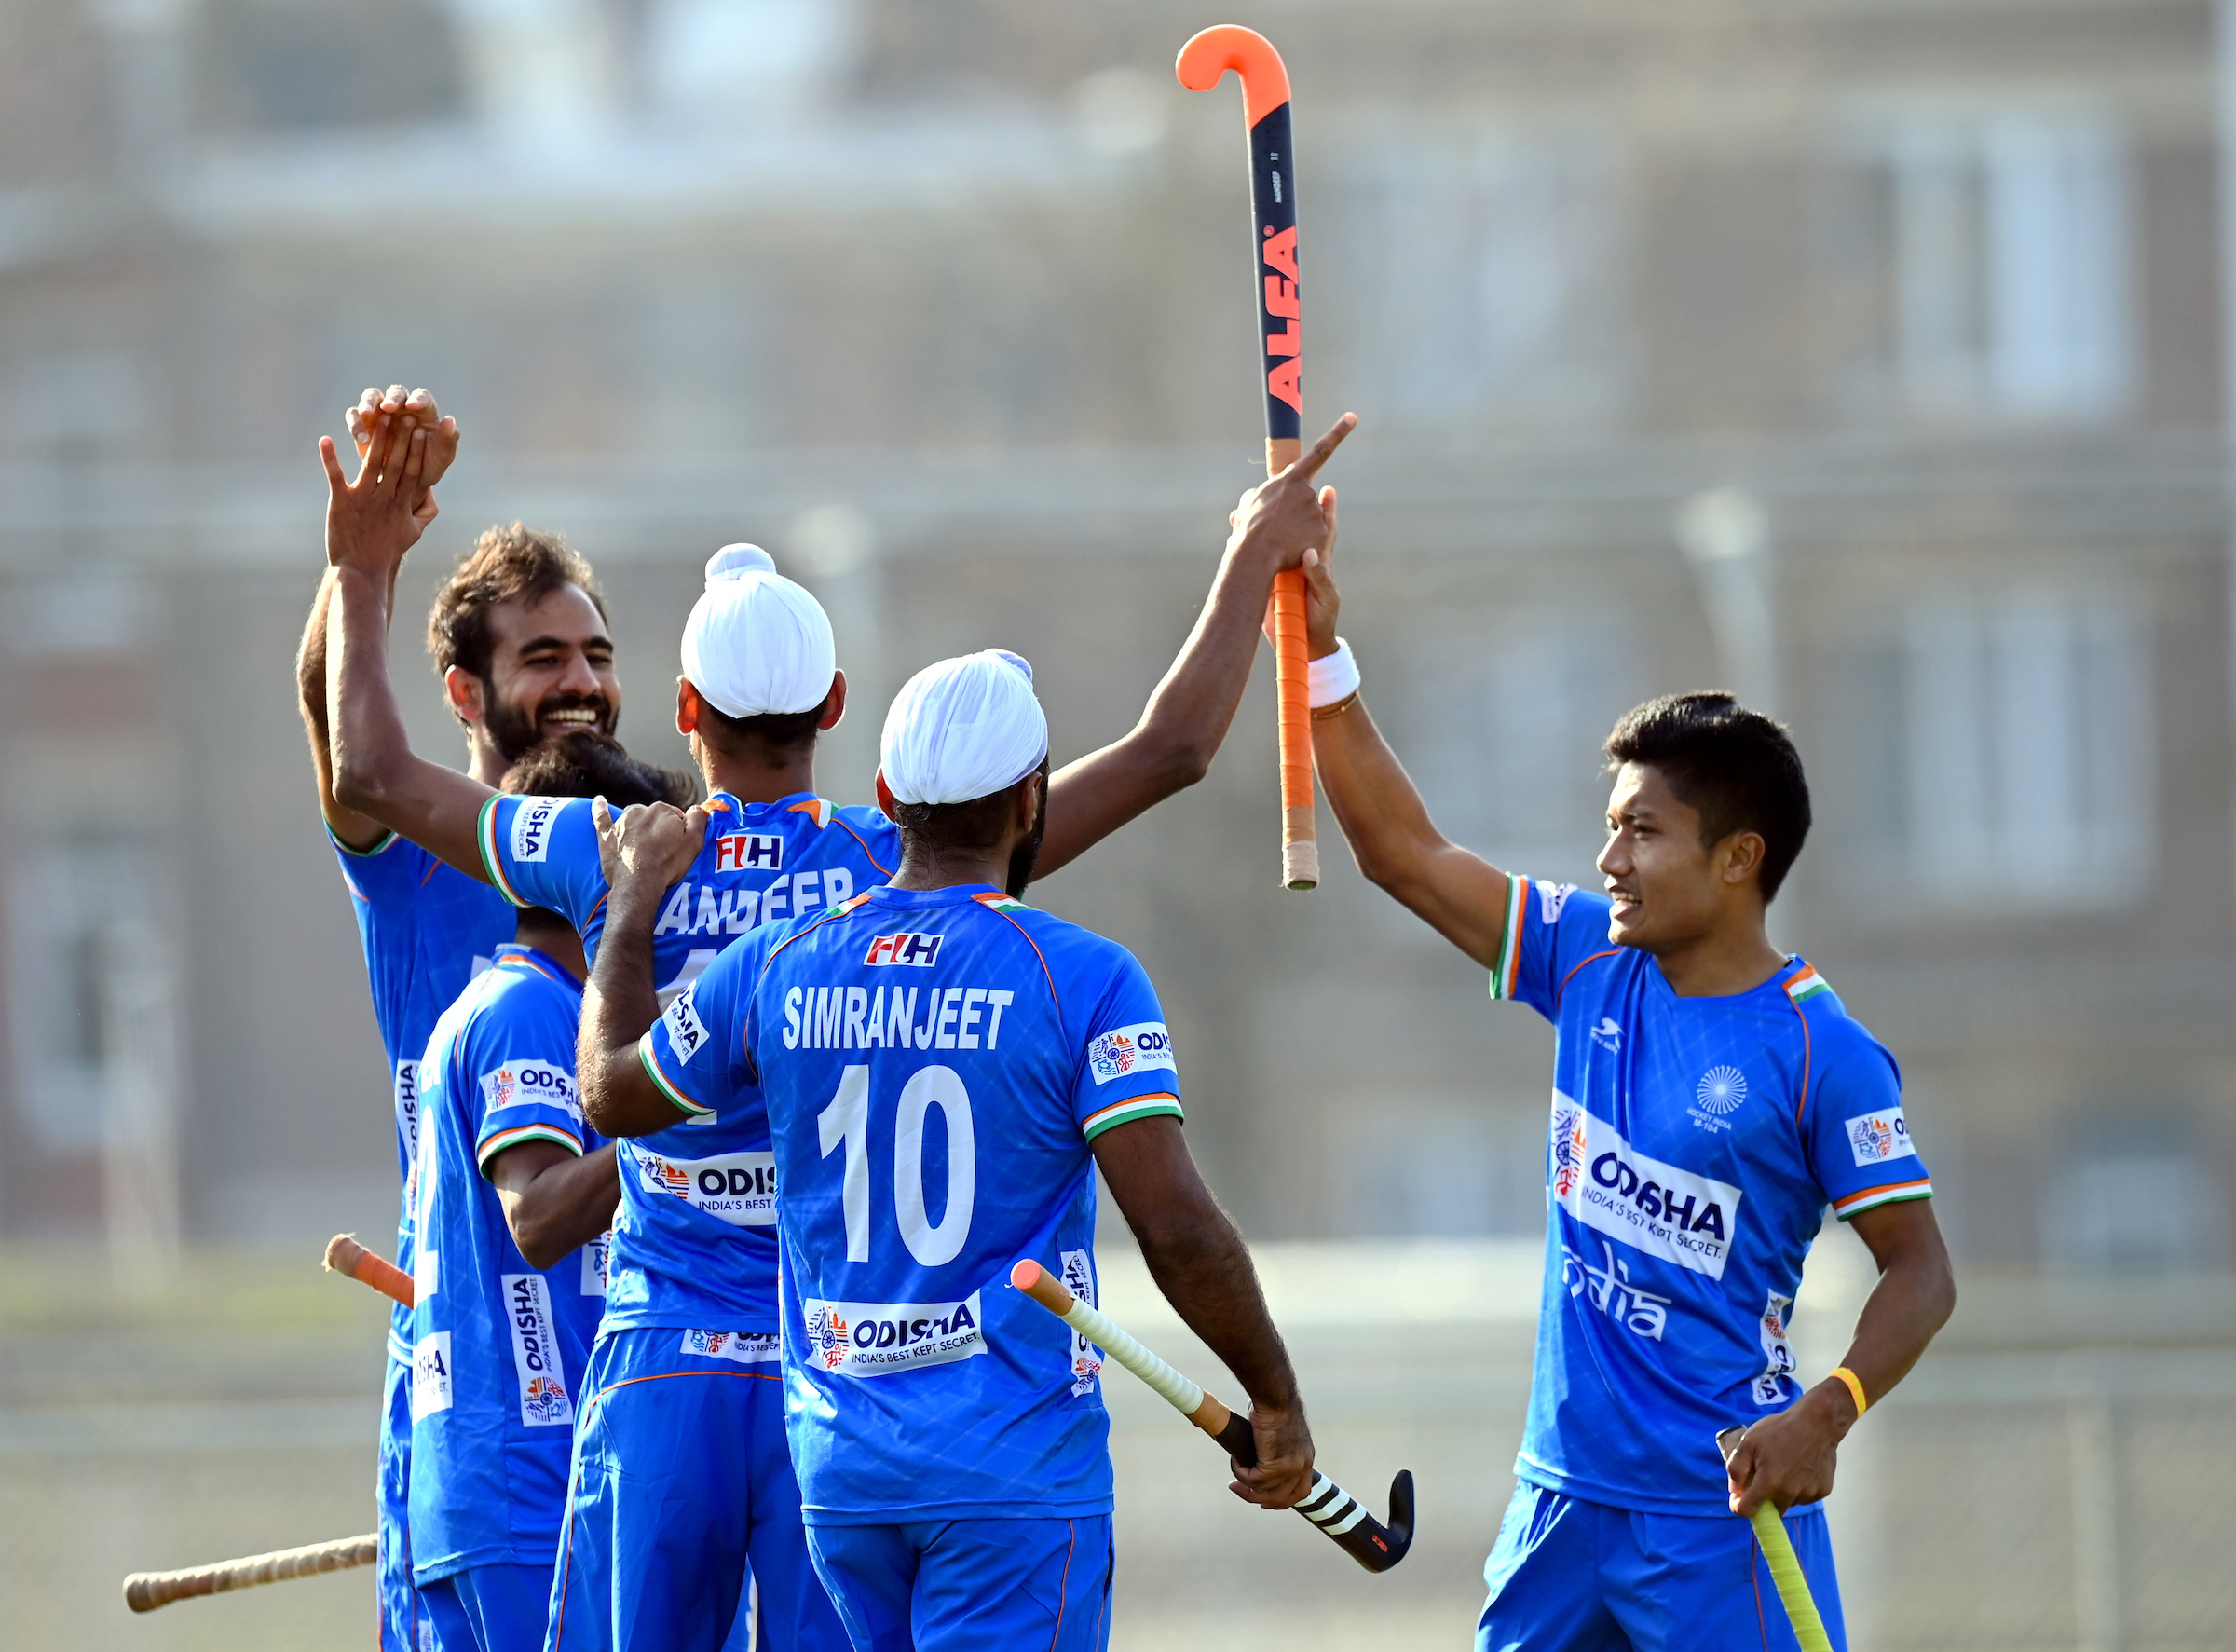 Indian Men's Hockey Team remain undefeated; beat Great Britain 3-2 in last match of the Europe Tour